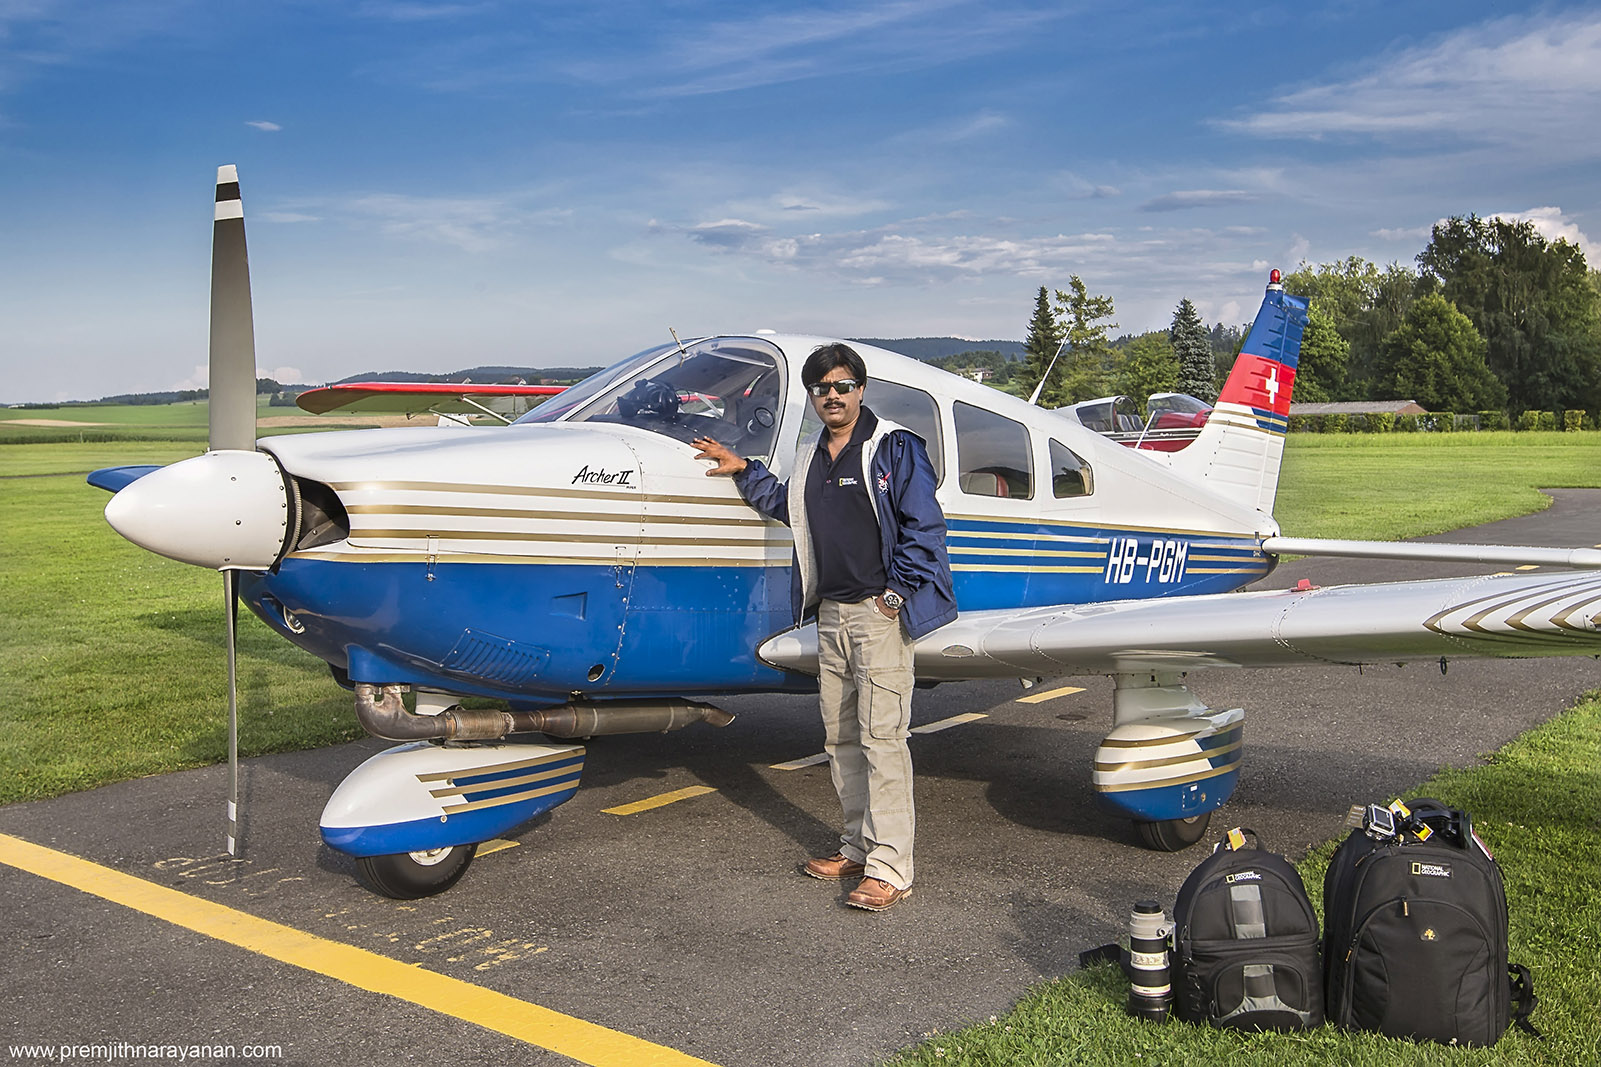 AT  LOMMIS  AIRFIELD  FOR  AERIAL  PHOTOGRAPHY,  SWITZERLAND